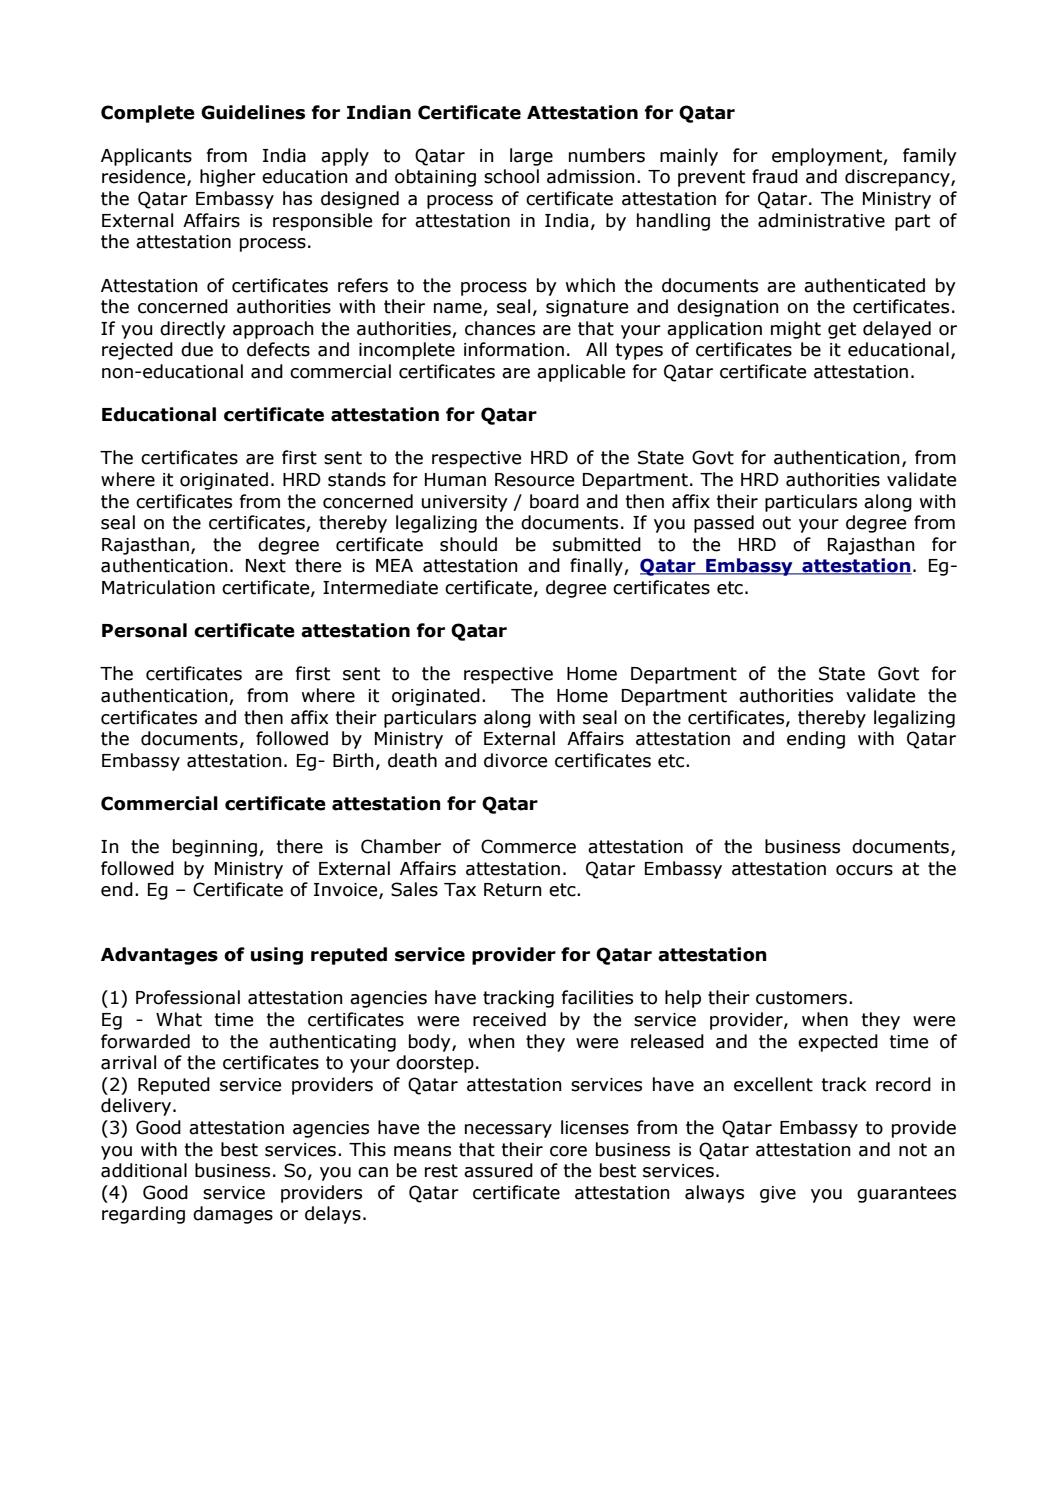 Complete guidelines for indian certificate attestation for qatar complete guidelines for indian certificate attestation for qatar by superb enterprises issuu aiddatafo Images